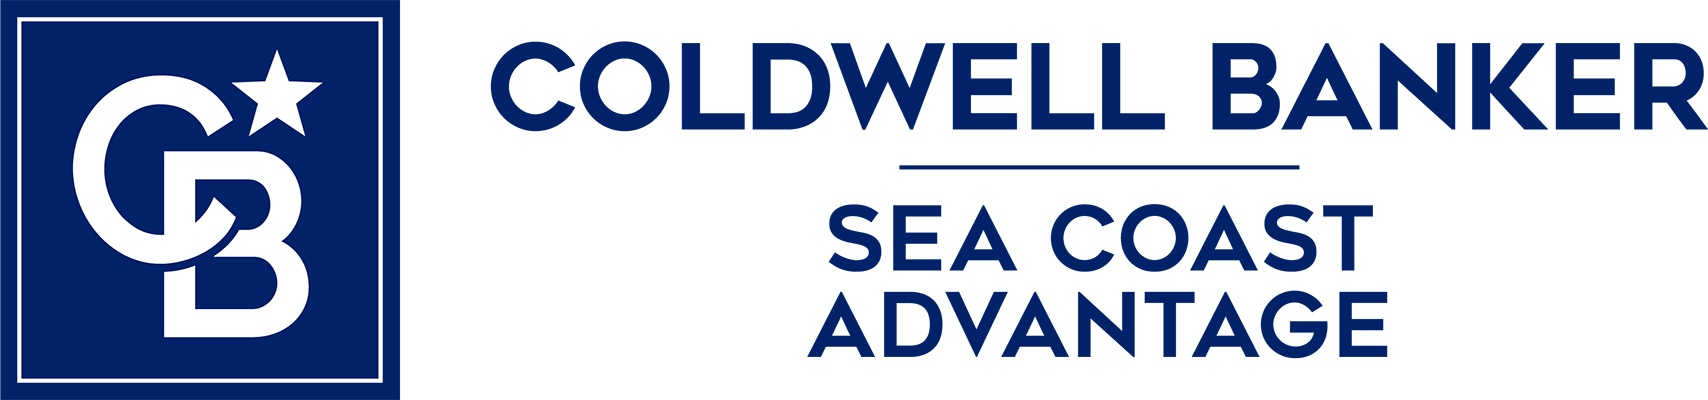 Tom O'Neill - Coldwell Banker Sea Coast Advantage Realty Logo